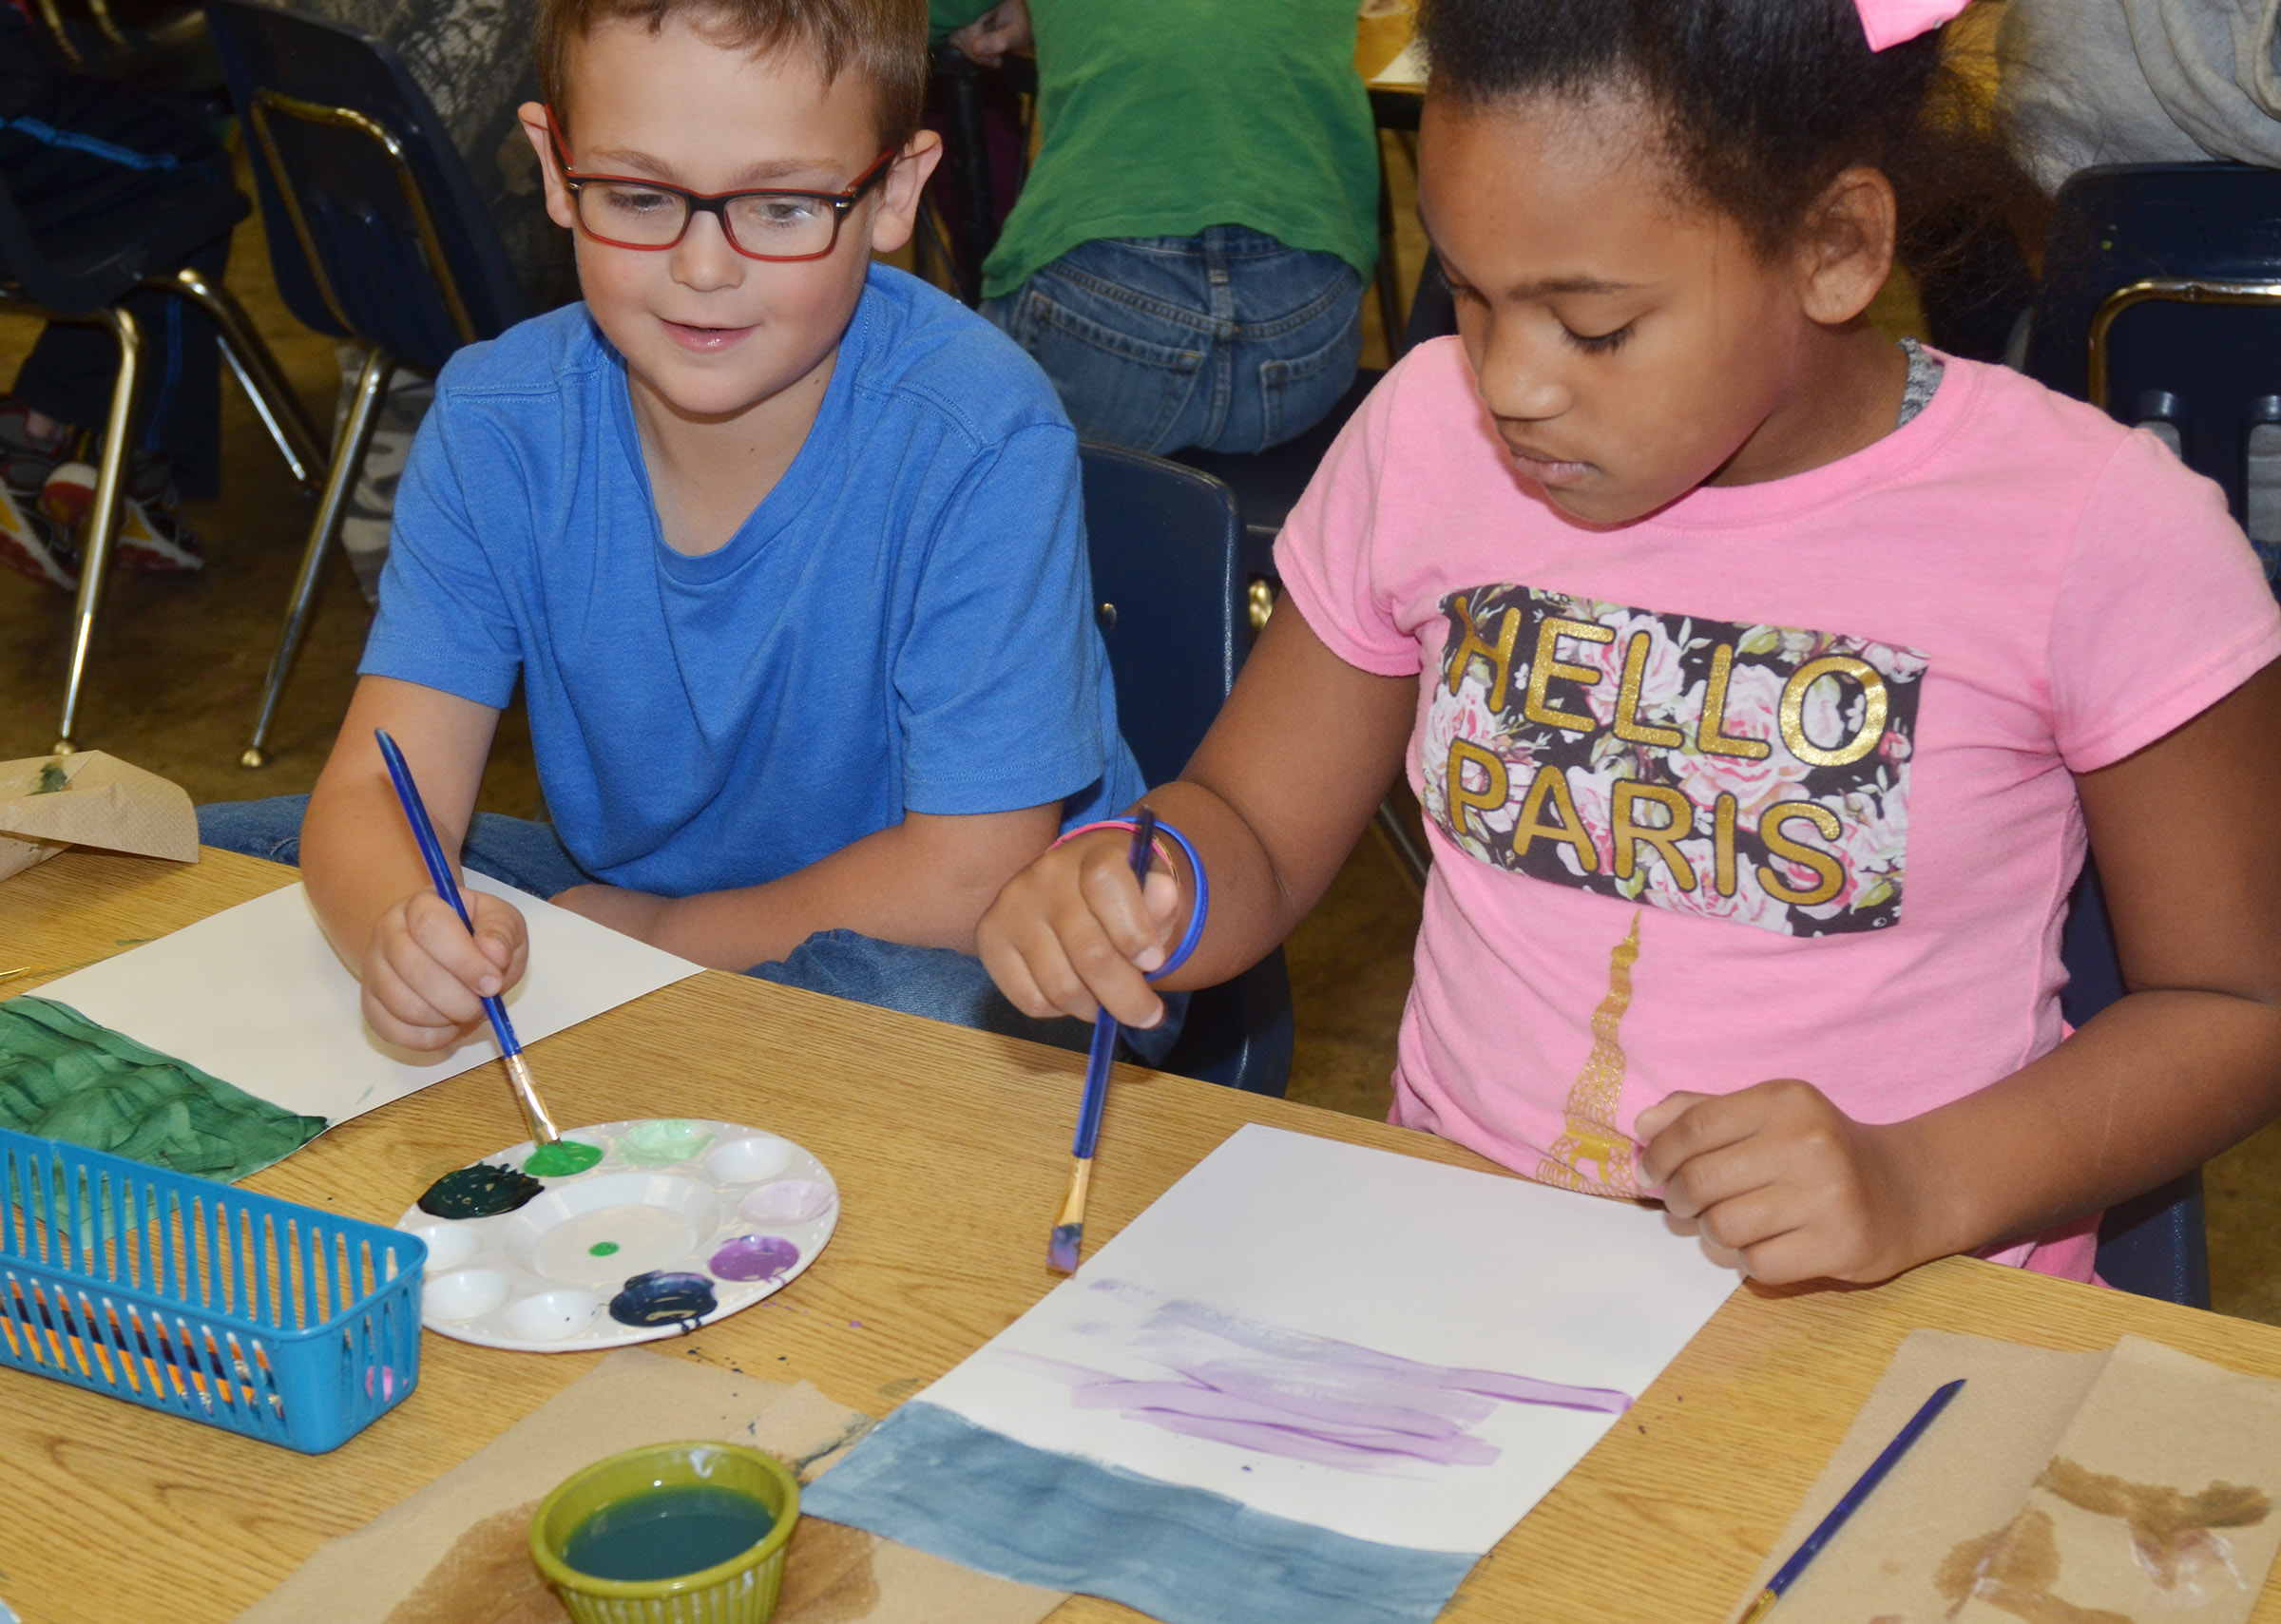 CES second-graders Brendan Martin, at left, and Ally Dunn paint.